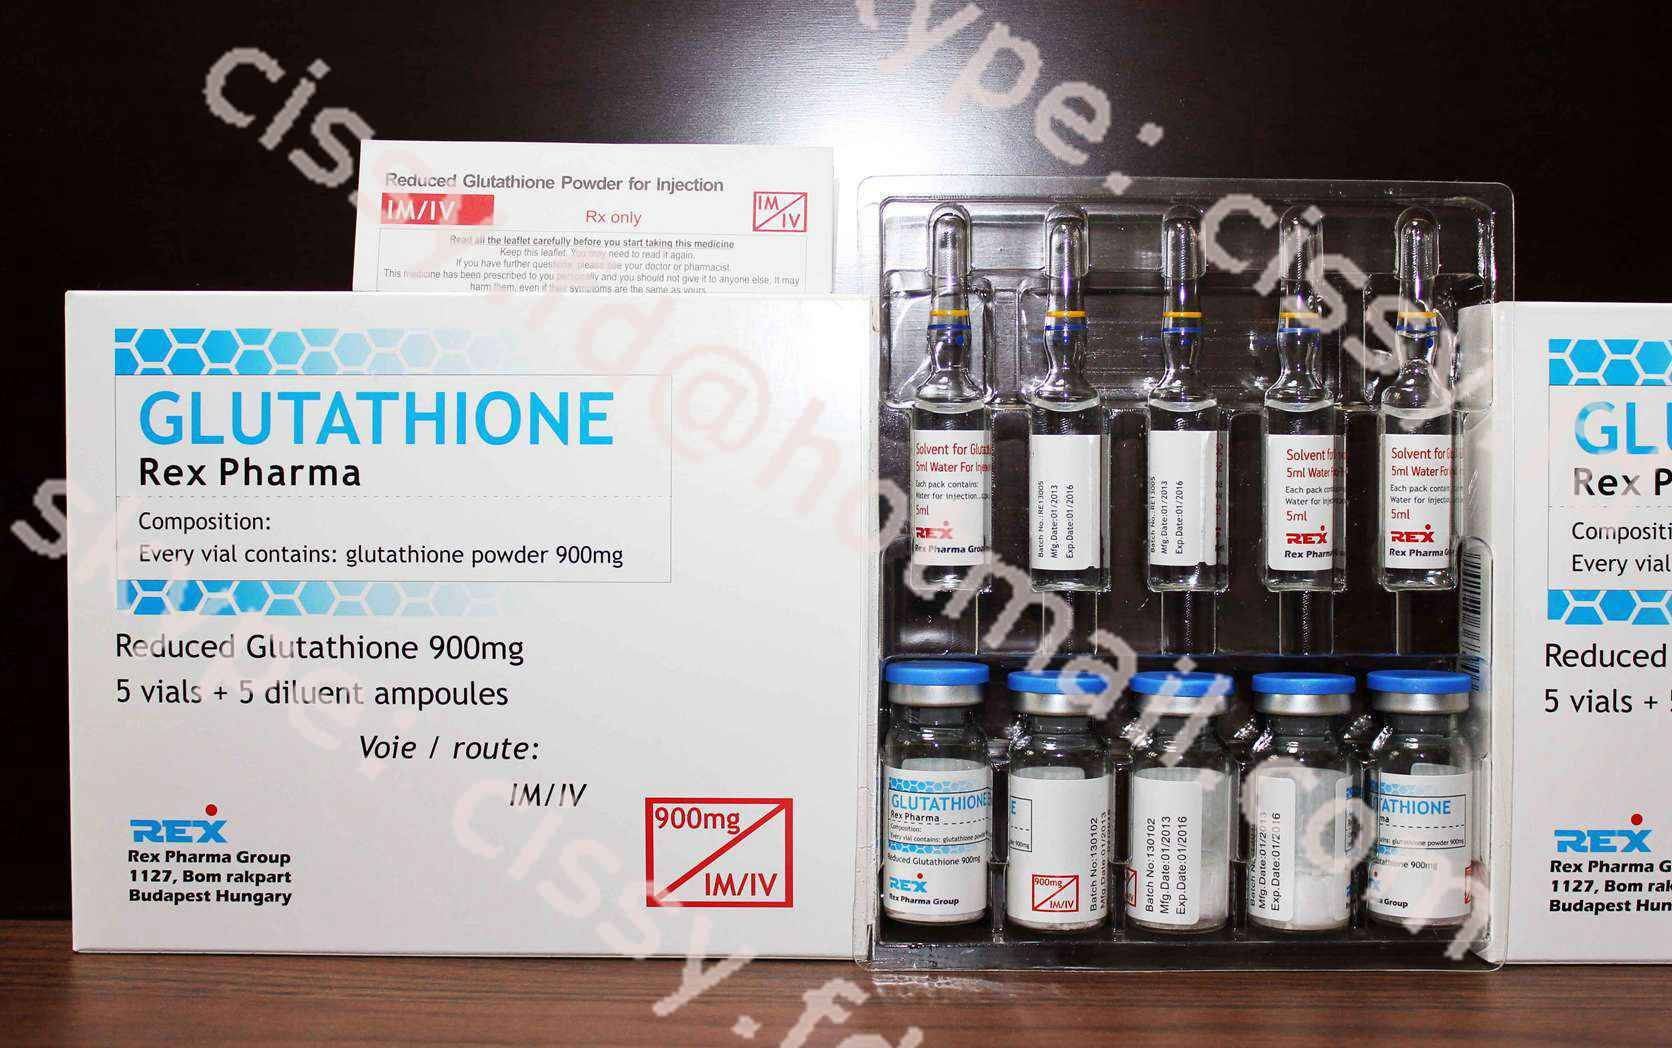 900mg skin whitening Glutathione for injection